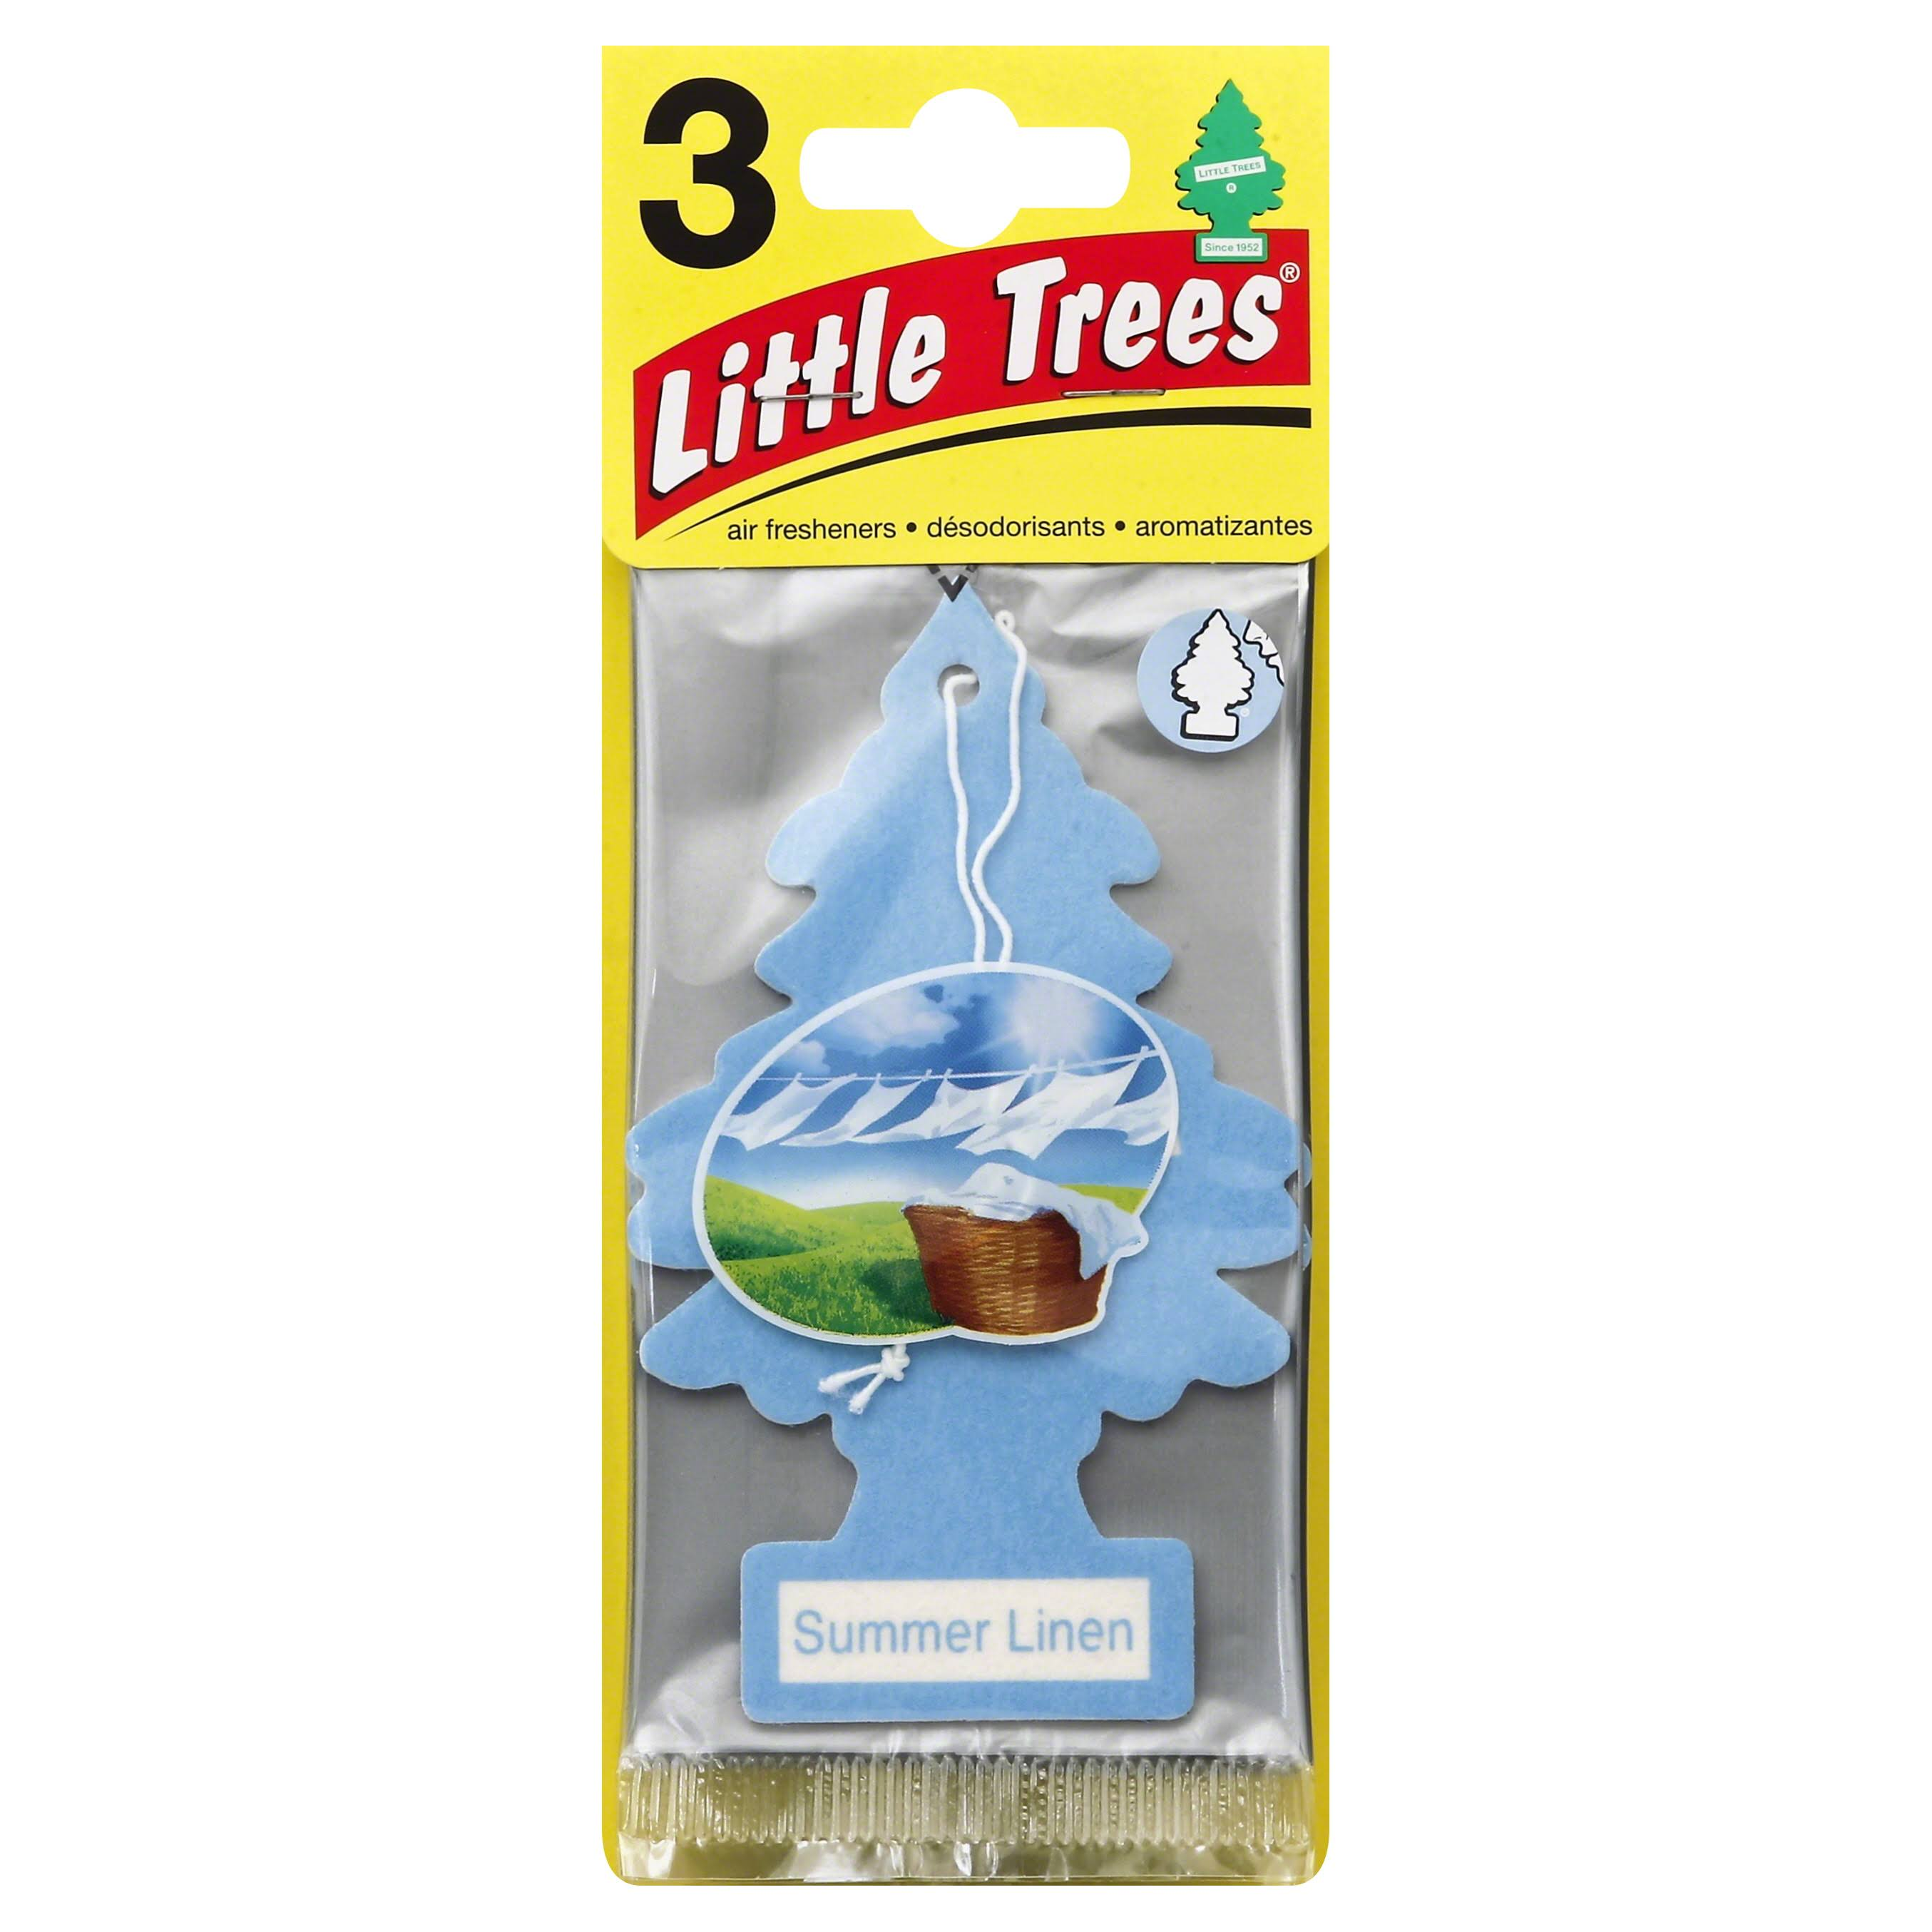 Car-Freshner Little Trees Summer Linen Air Freshener - 3pk